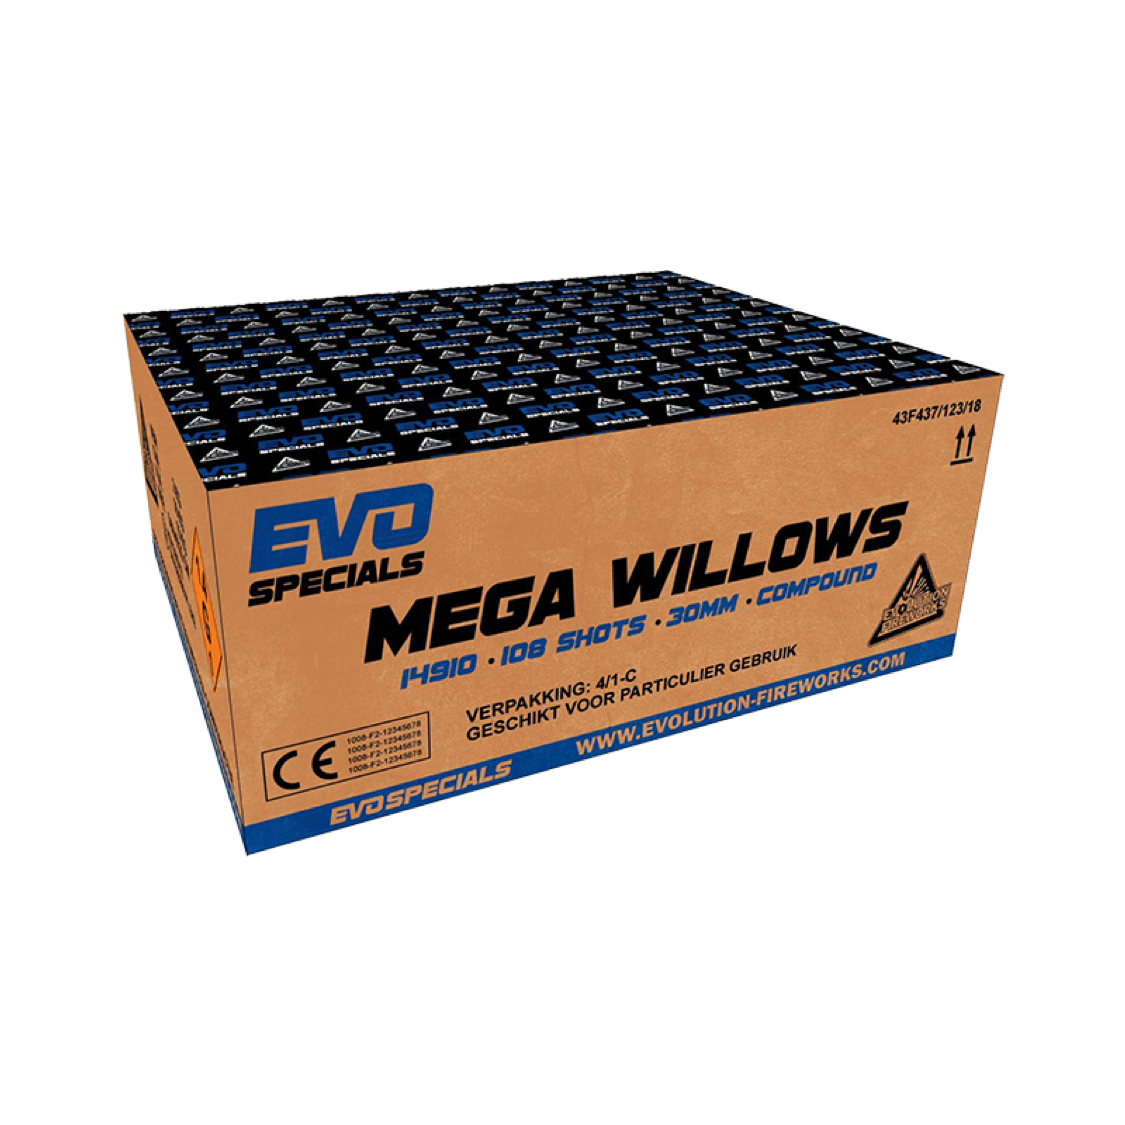 ART 14910 MEGA WILLOWS, 108 SHOTS, 30 MM TUBE SIZE